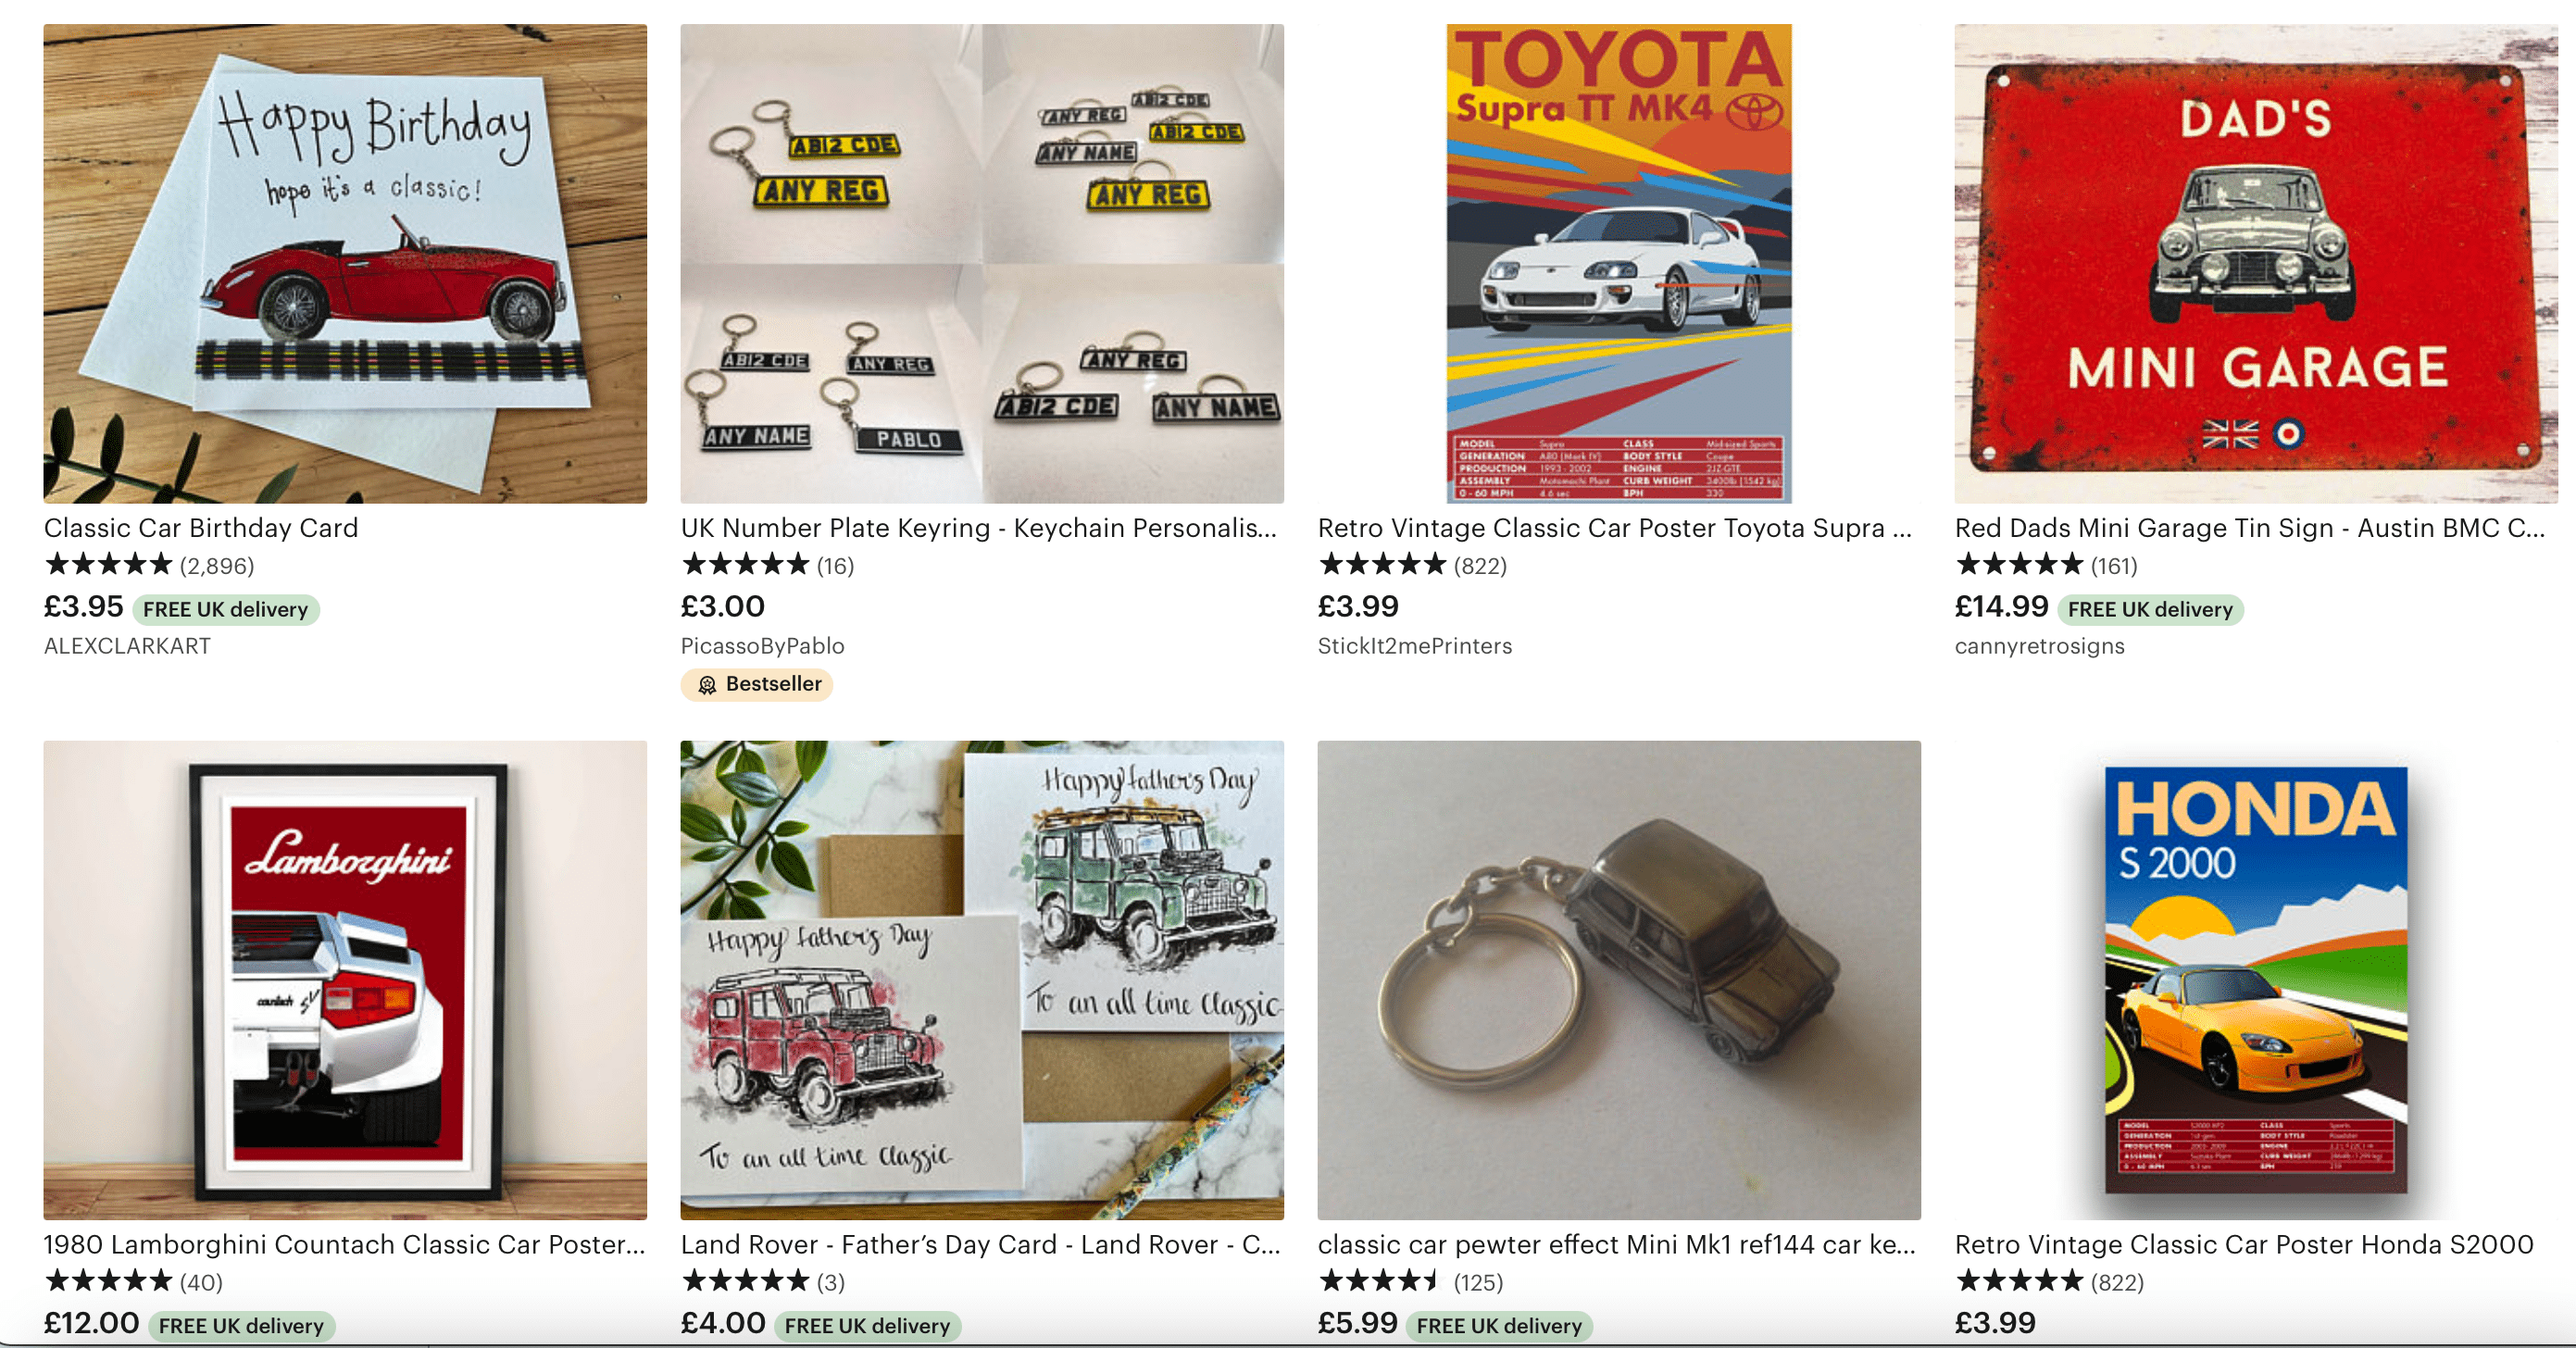 Classic Car Photos, Prints, Gifts and More